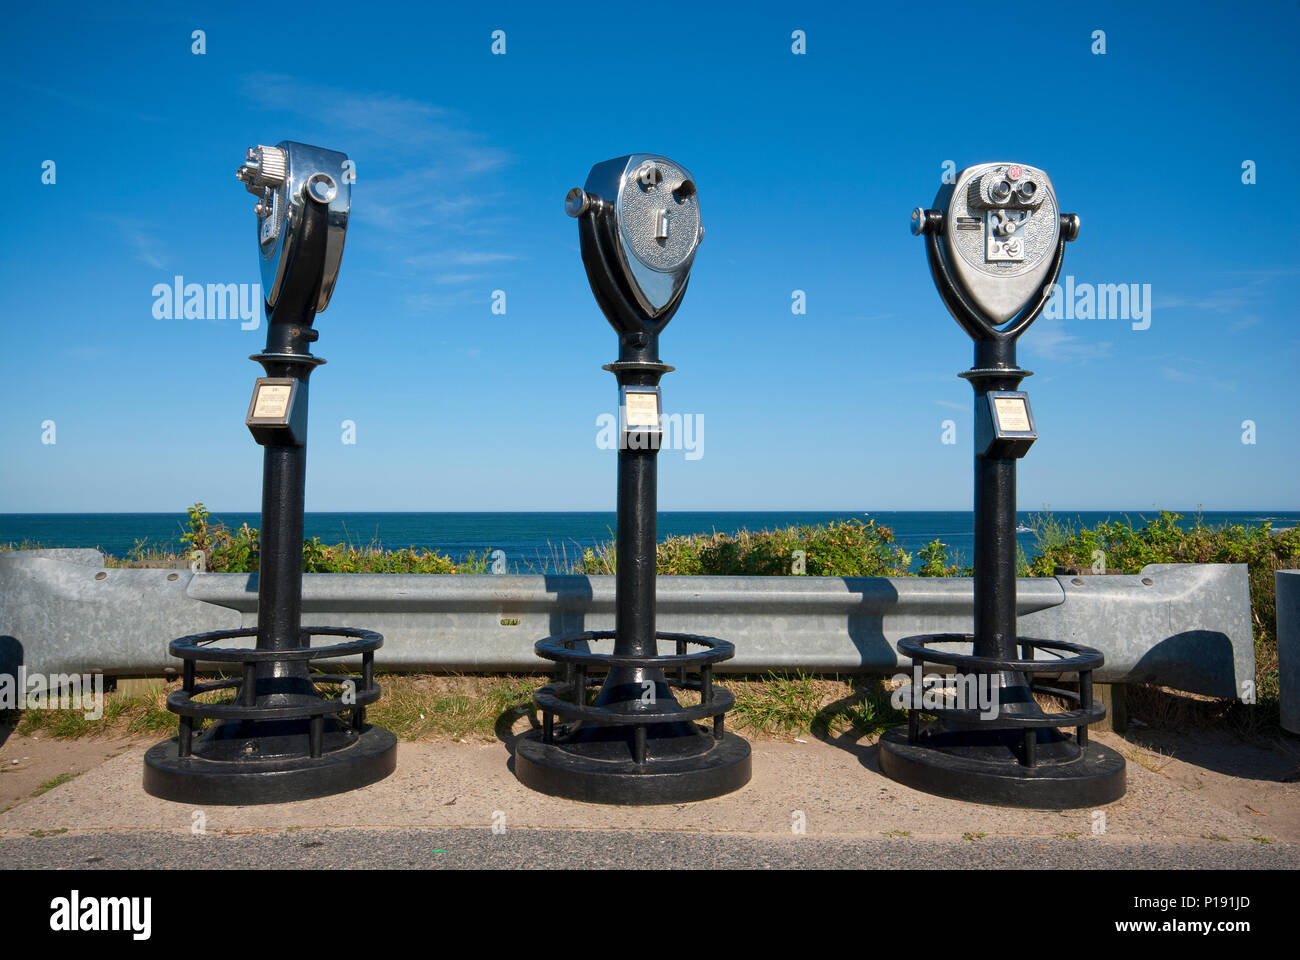 Coin operated binoculars at Chatham, Barnstable County, Cape Cod, Massachusetts, USA - Stock Image